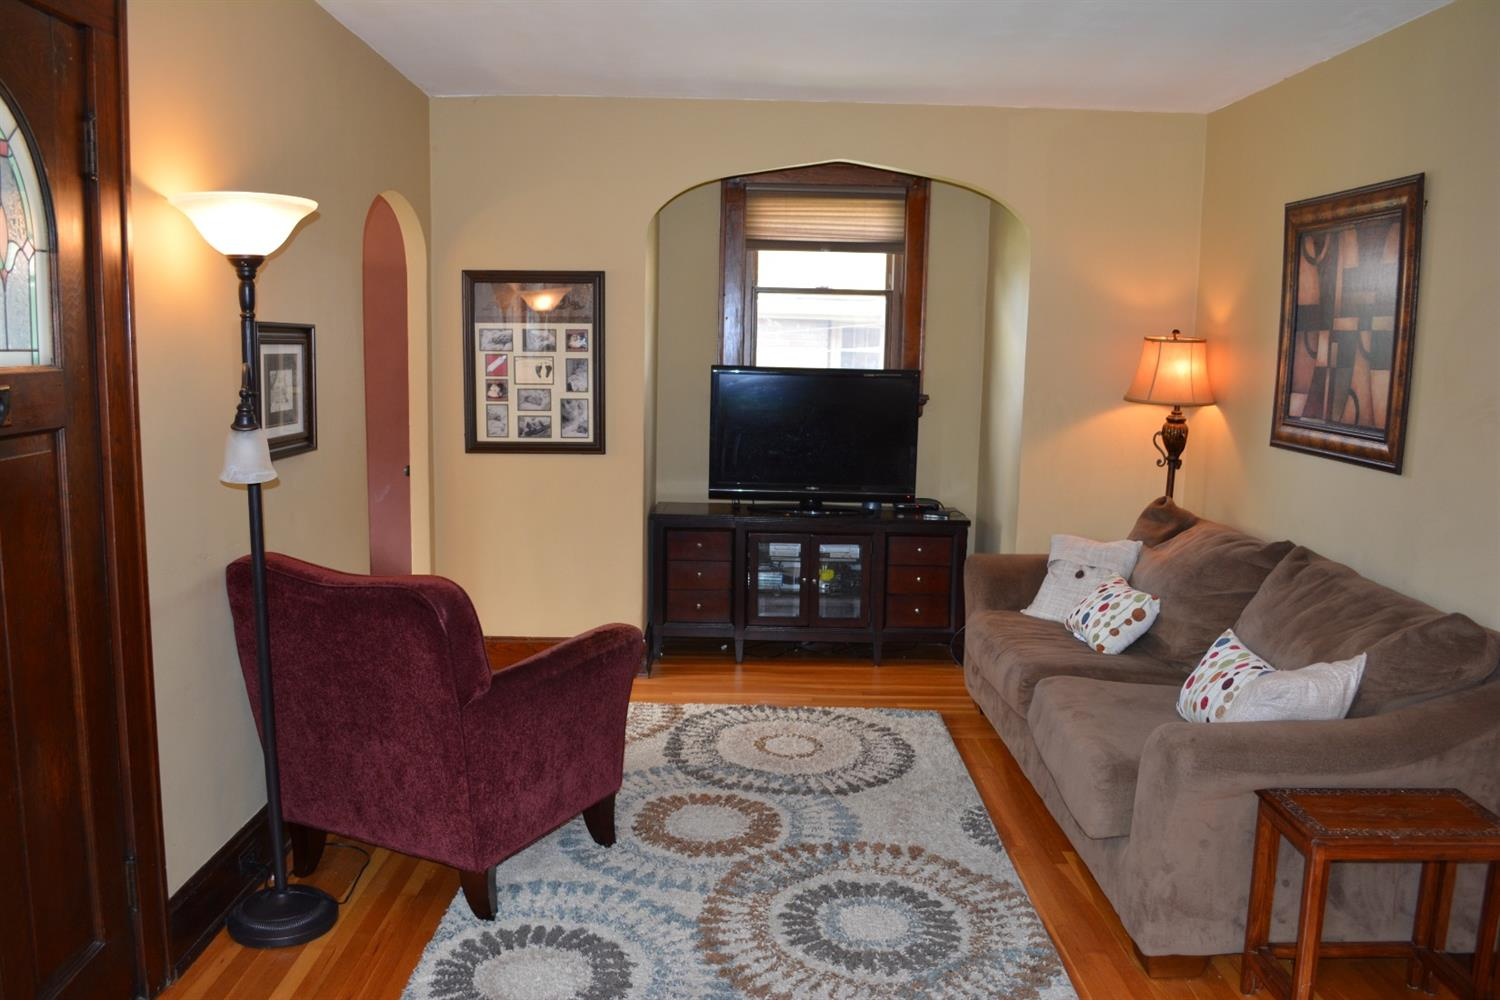 Photo 3 for 5098 Sumter Ave Ave Covedale, OH 45238